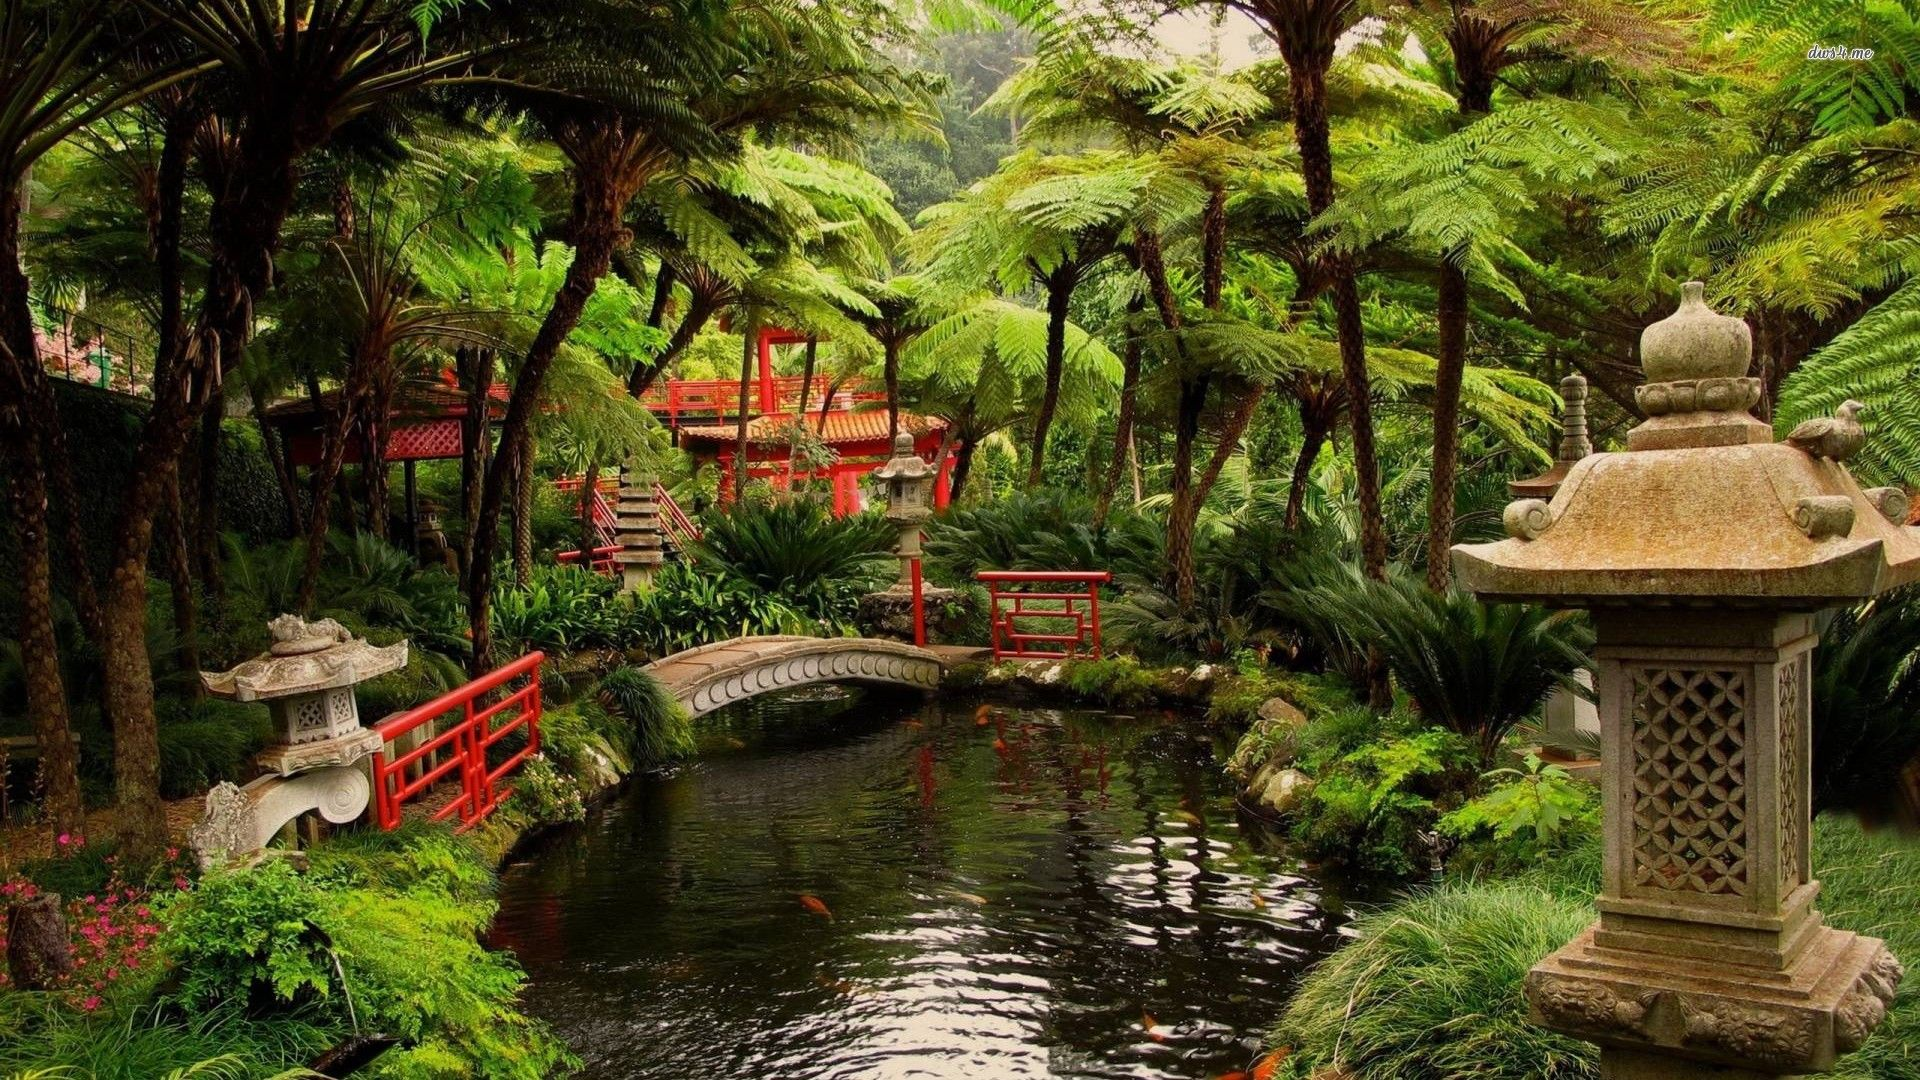 Other japanese garden bridge pond building trees world for Japanese pond